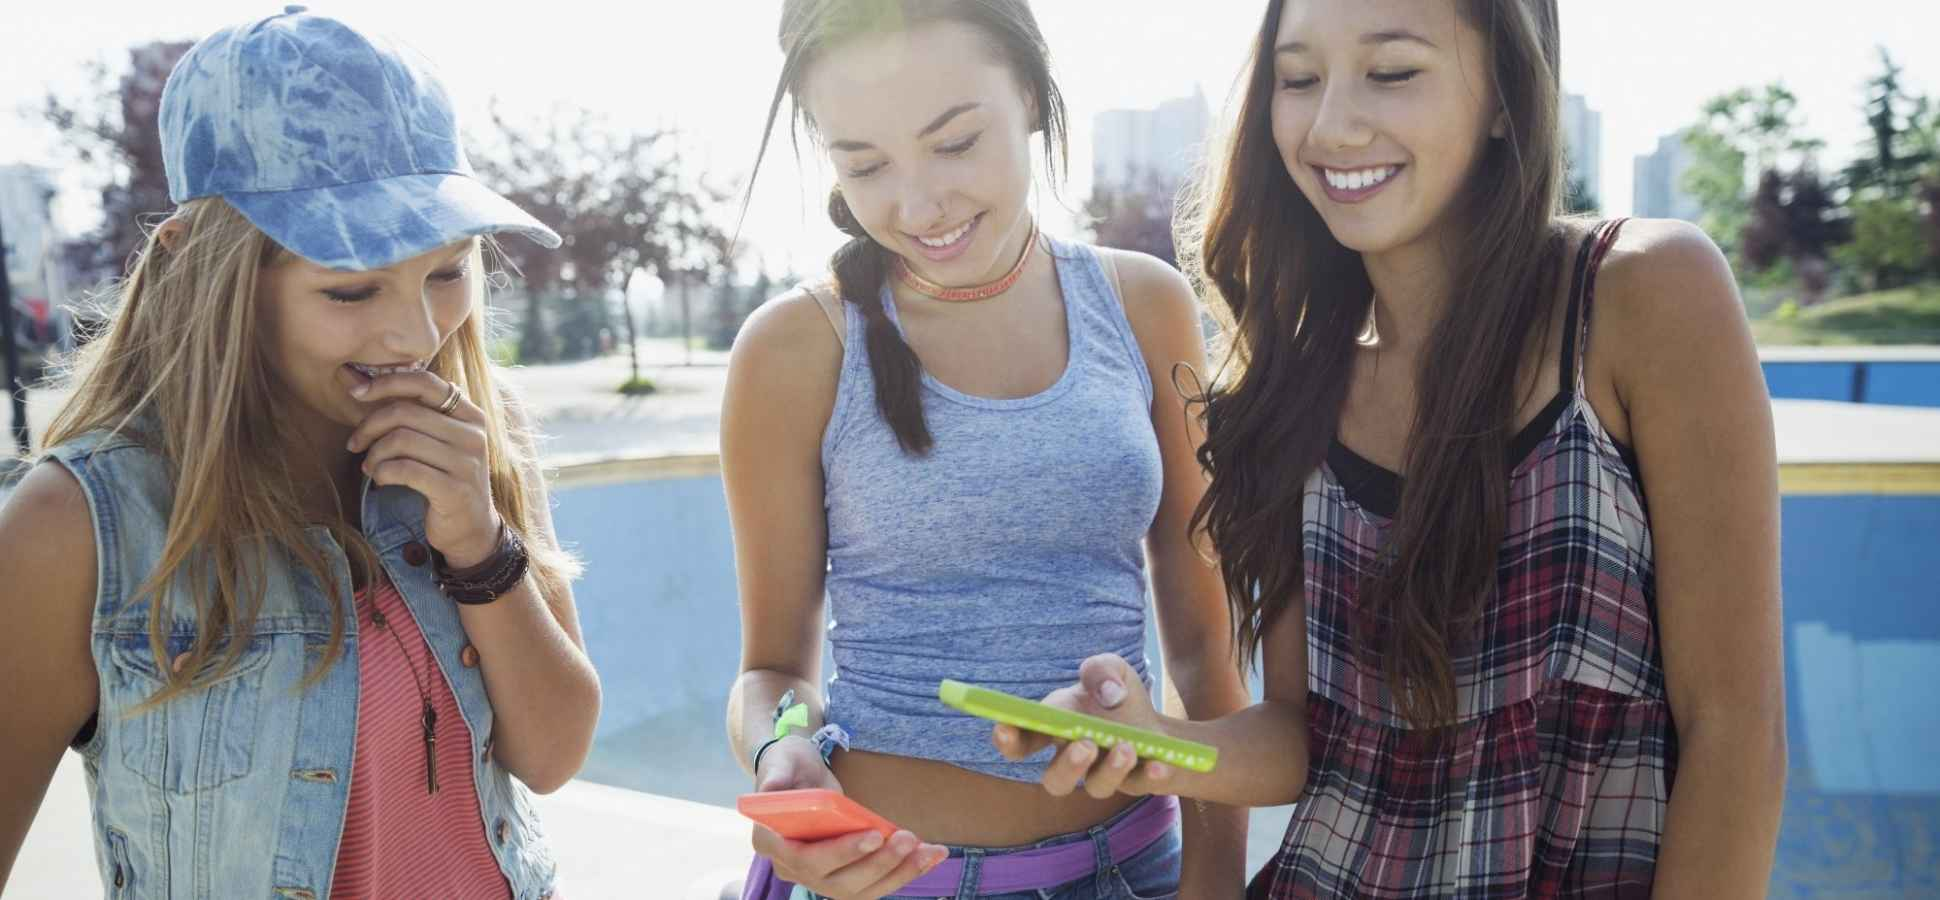 3 Reasons Today's Teens Are Radically Different From Millennials